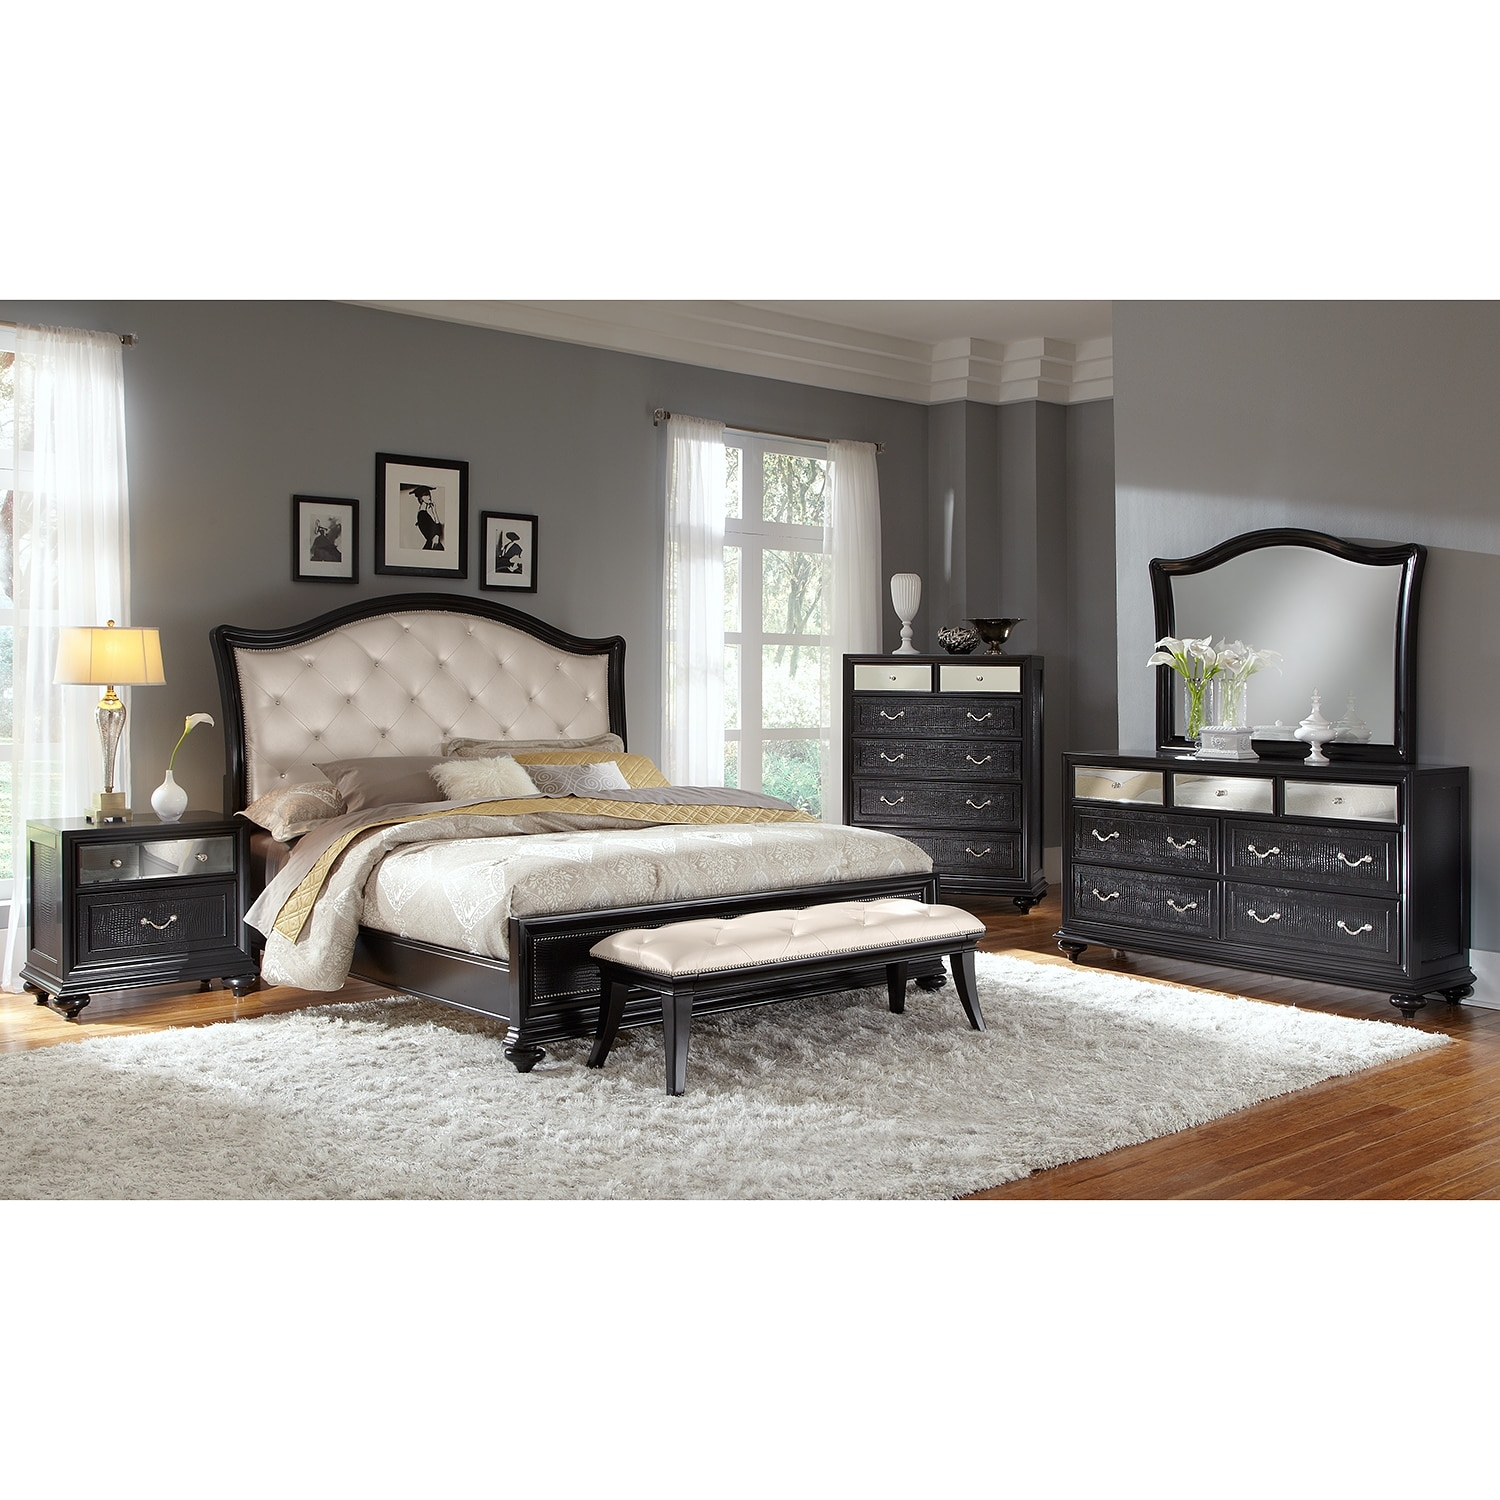 Marilyn queen bed ebony value city furniture for Bedroom sets with mattress included